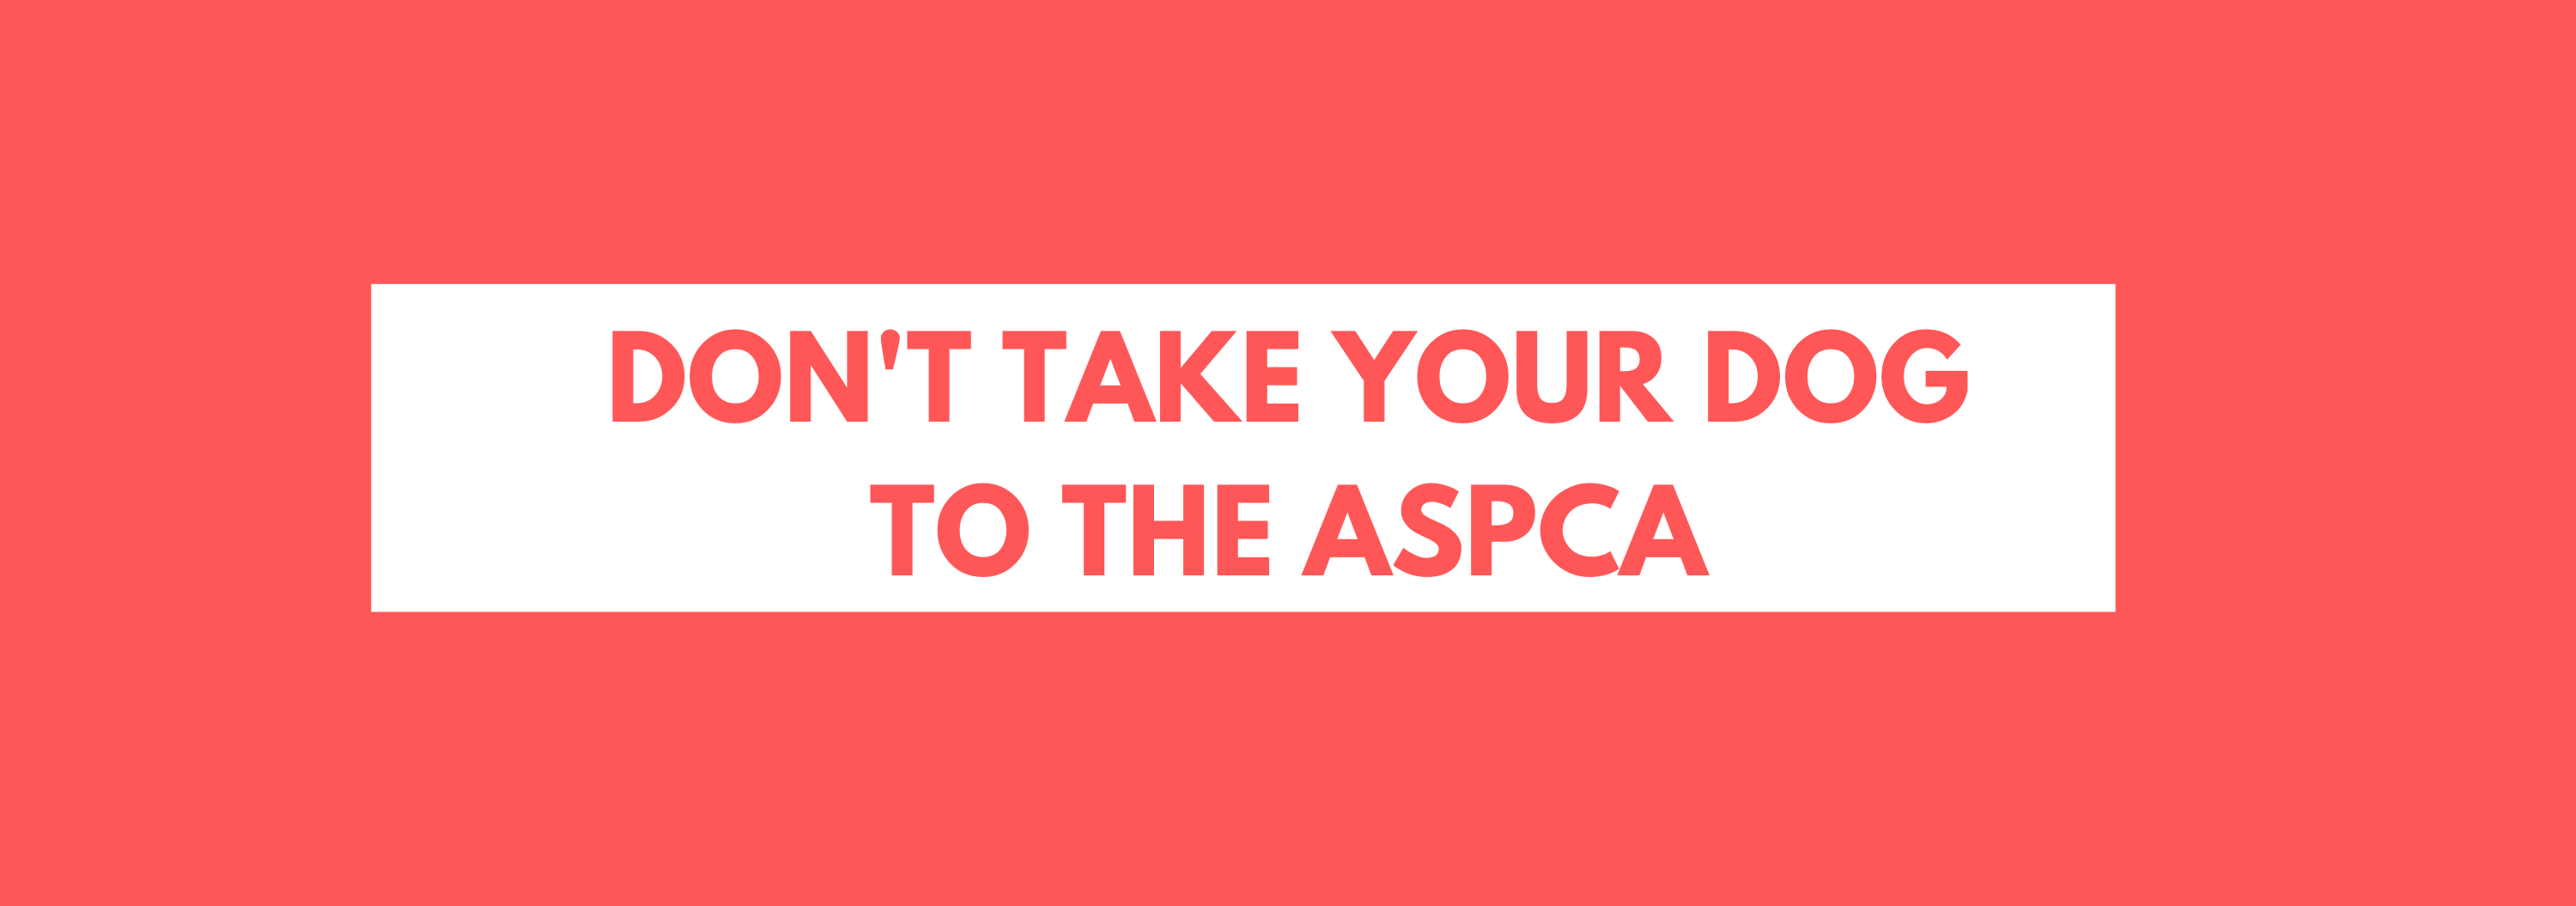 DONT TAKE YOUR DOG TO THE ASPCA